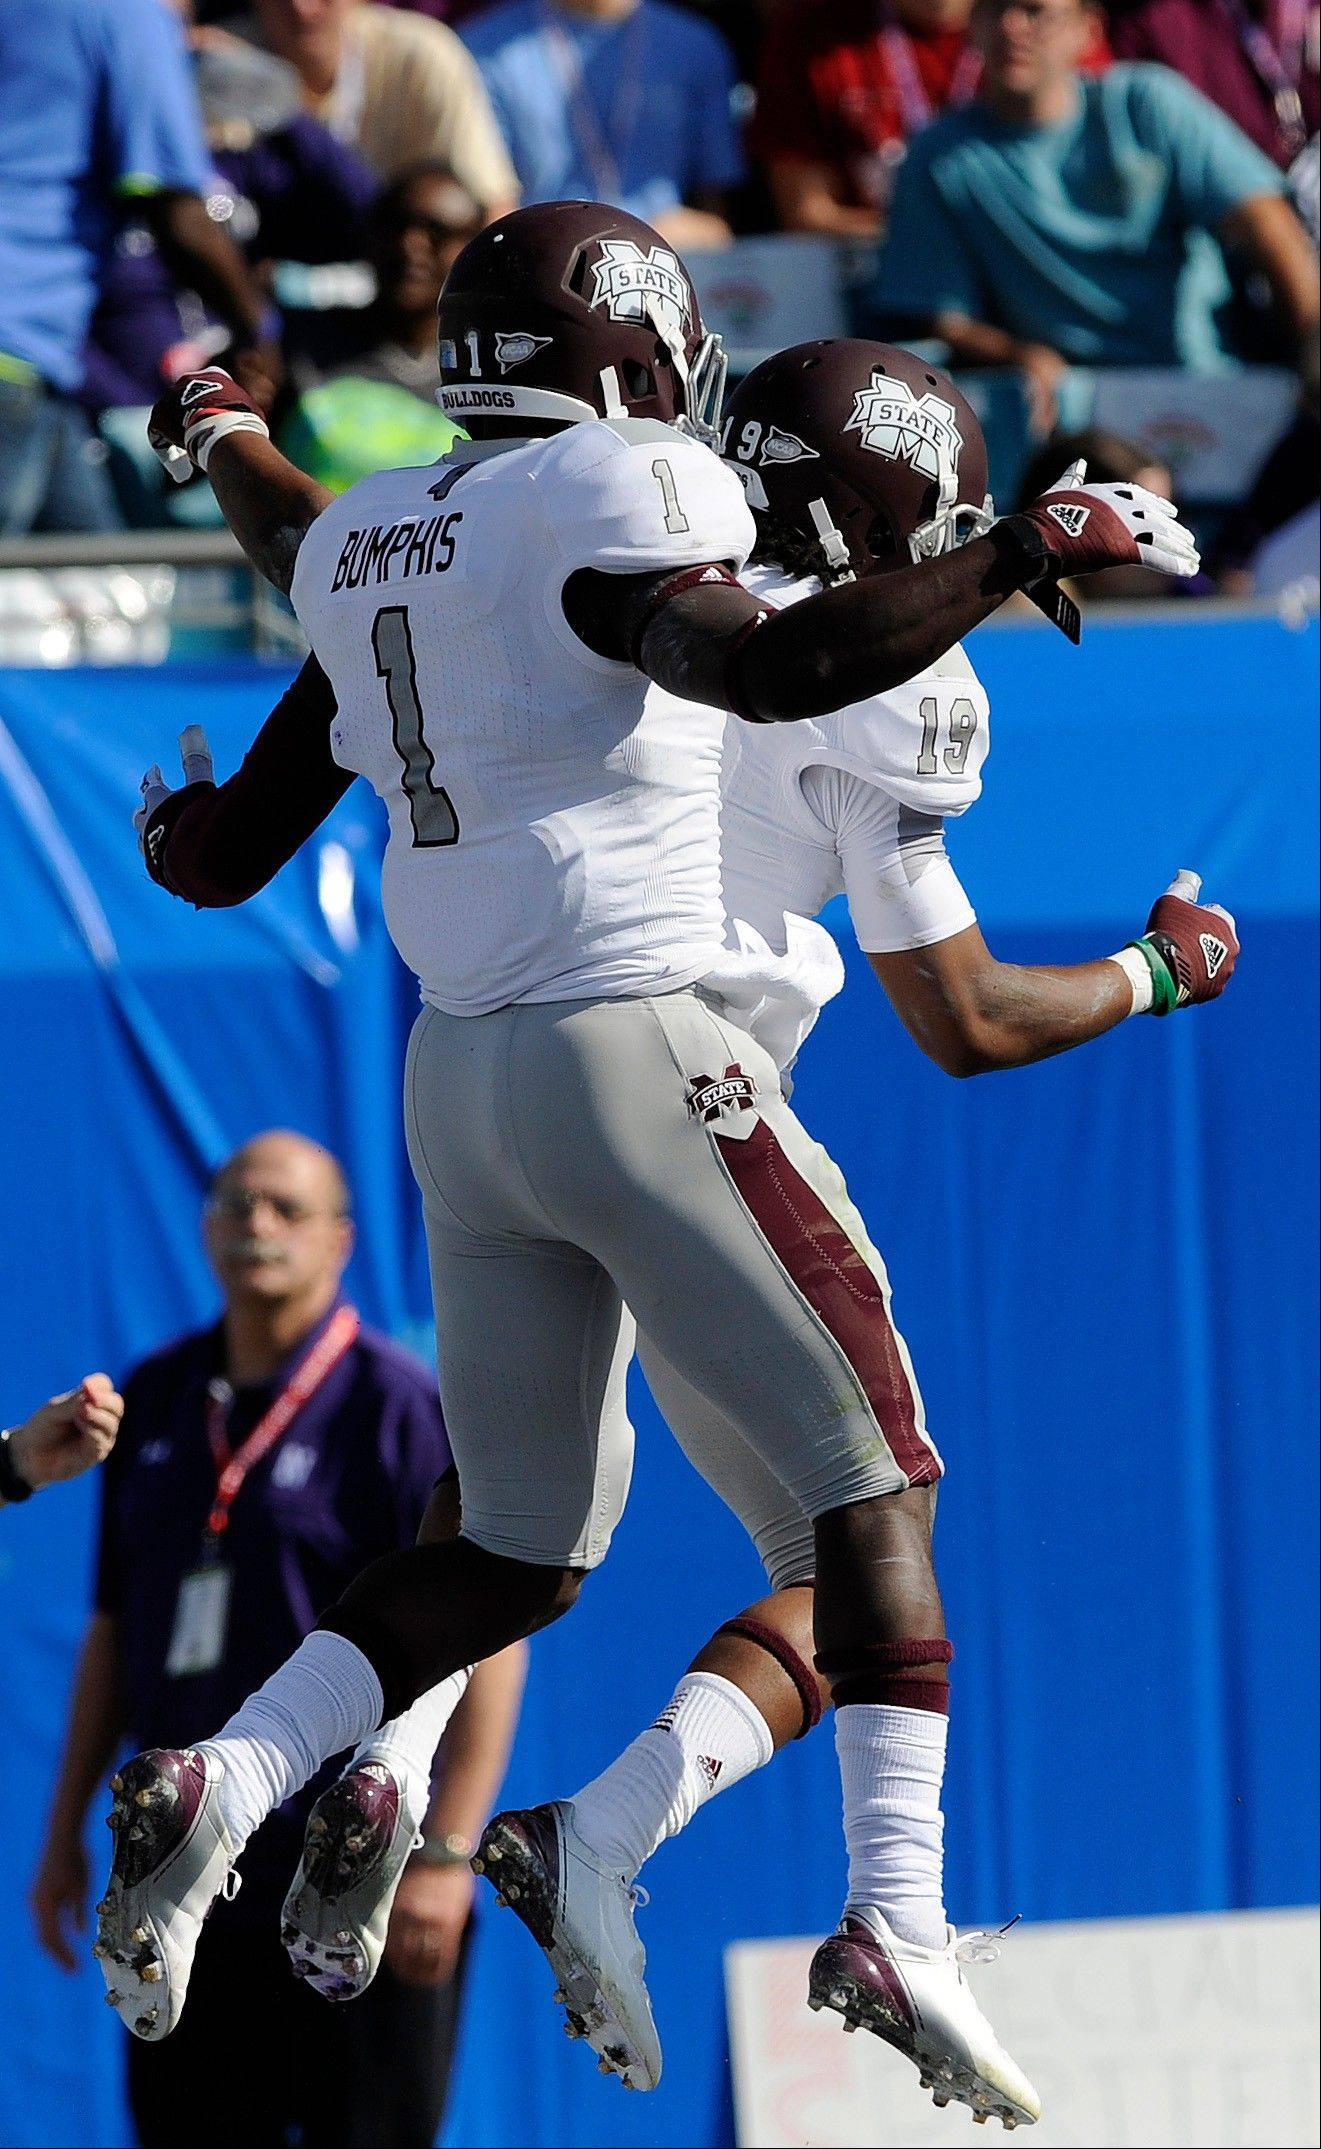 Mississippi State wide receivers Arceto Clark (19) and Chad Bumphis (1) celebrate Clark's touchdown catch against Northwestern during the first half of the Gator Bowl NCAA college football game, Tuesday, Jan. 1, 2013, in Jacksonville, Fla.